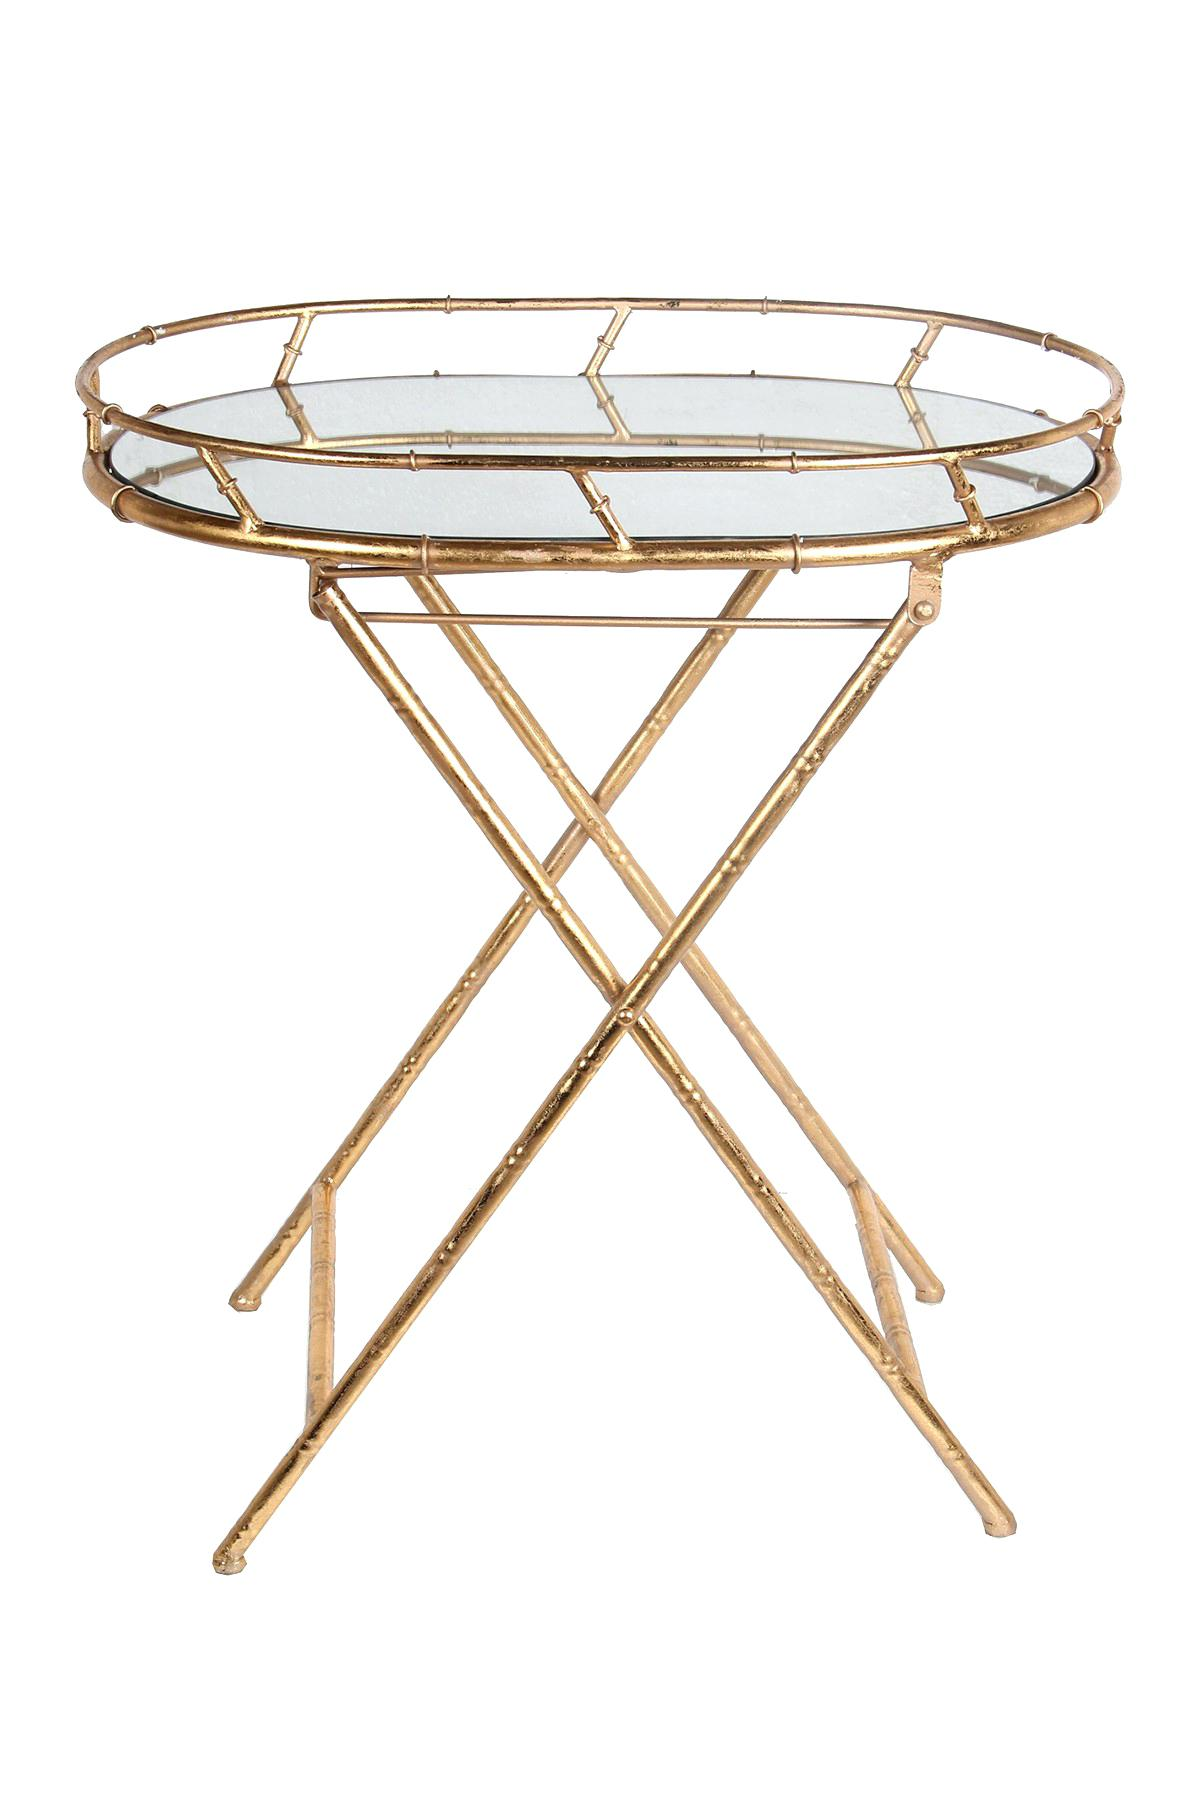 gold tray table round accent tables for bedroom dark wood privilege oval small west elm armoire large square outdoor coffee cordless lamps double vanity kitchen spaces ideas navy